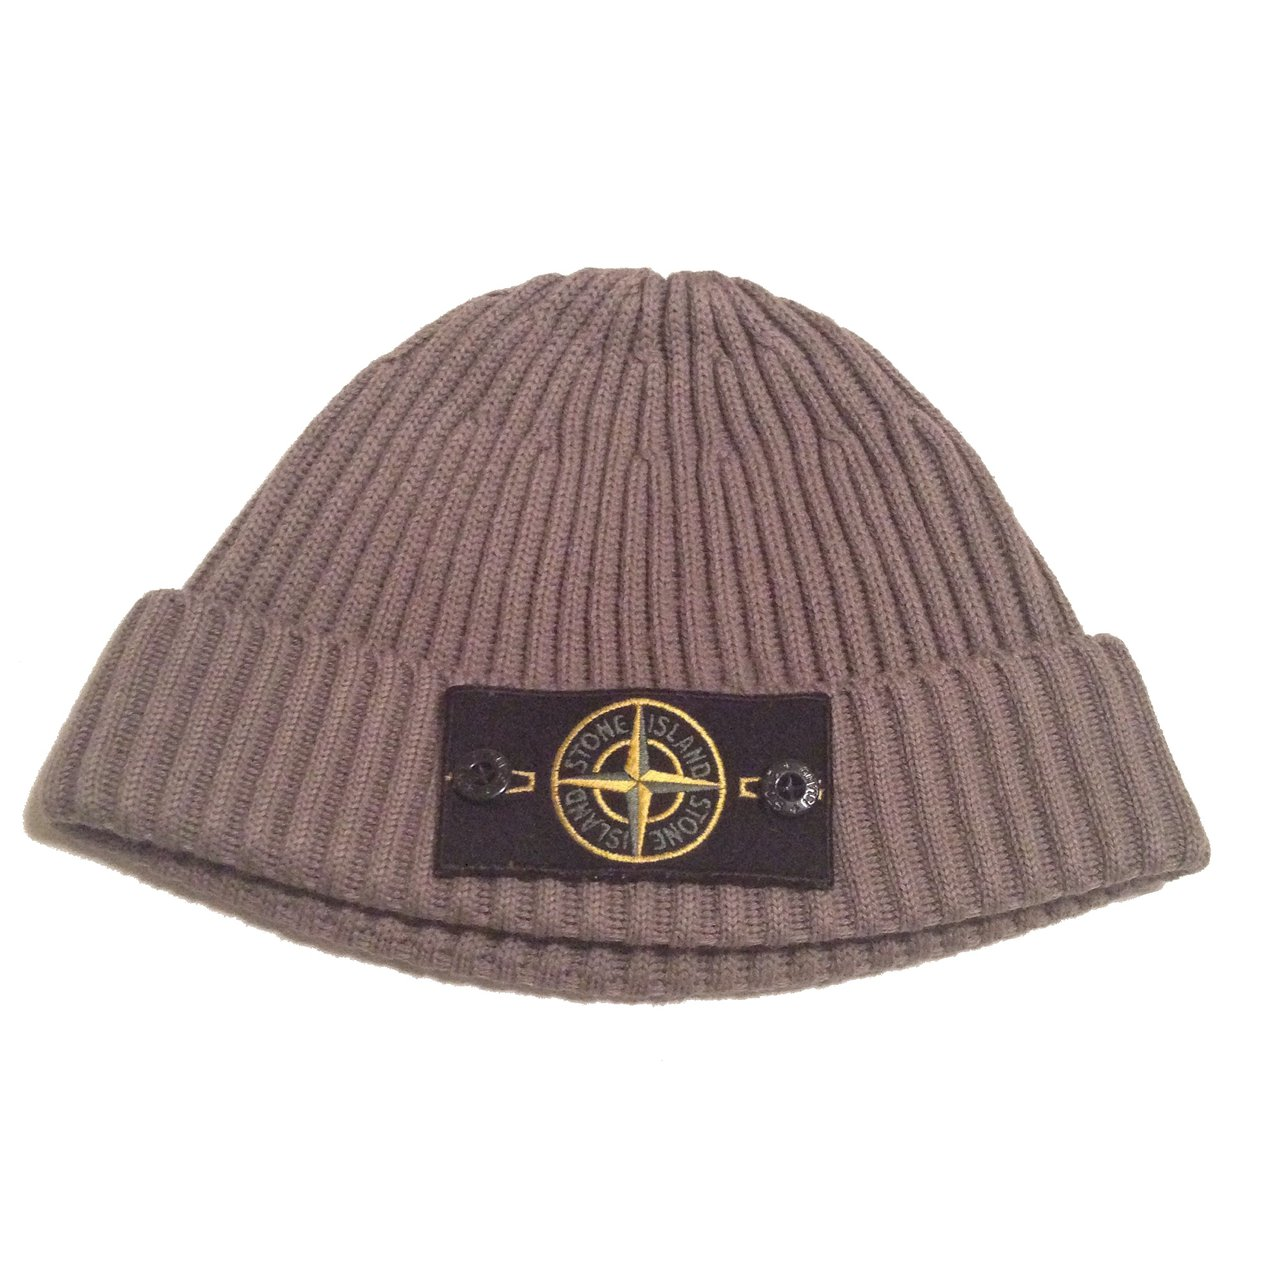 🕸🌪An extremely rare Stone Island Badge Beanie to flex in a - Depop d659d9e6604